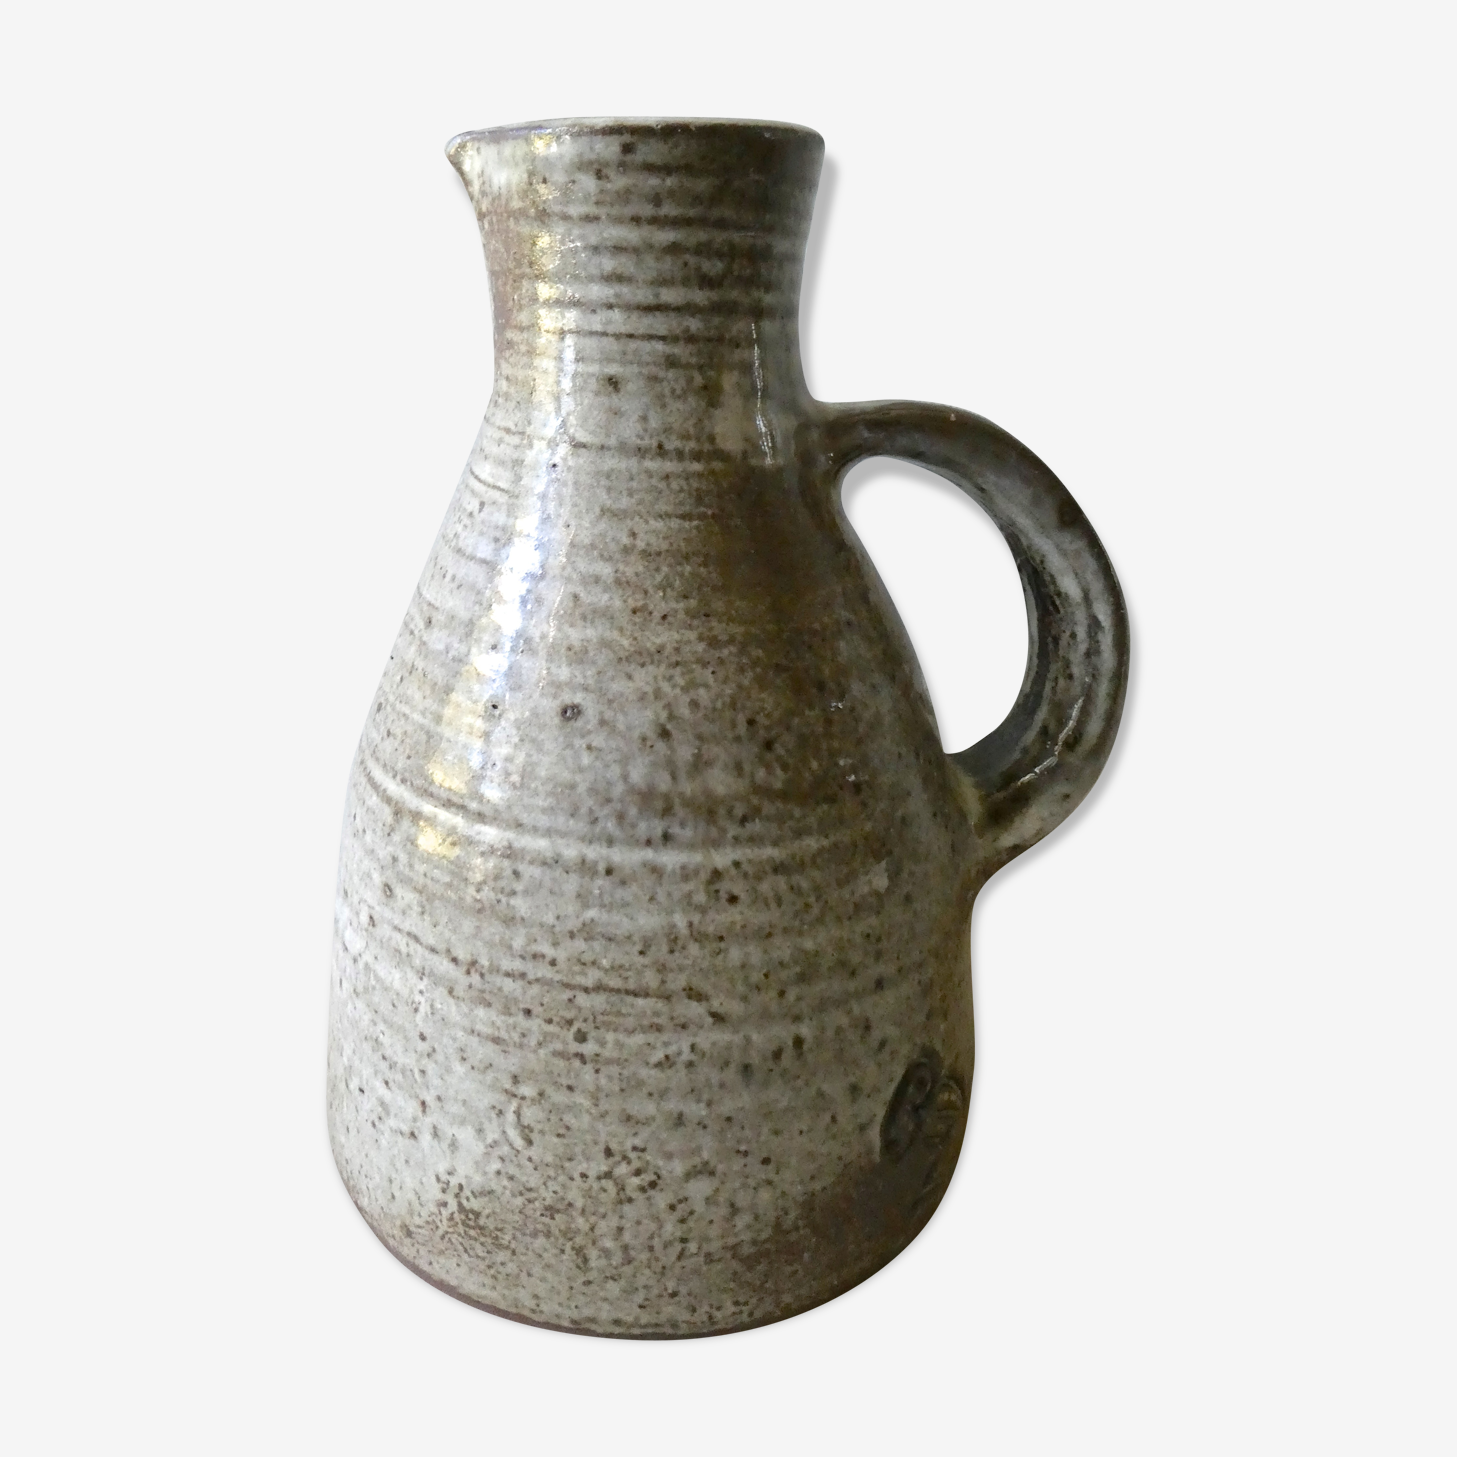 Pitcher in sandstone of Jeanne and Norbert Pierlot 60s